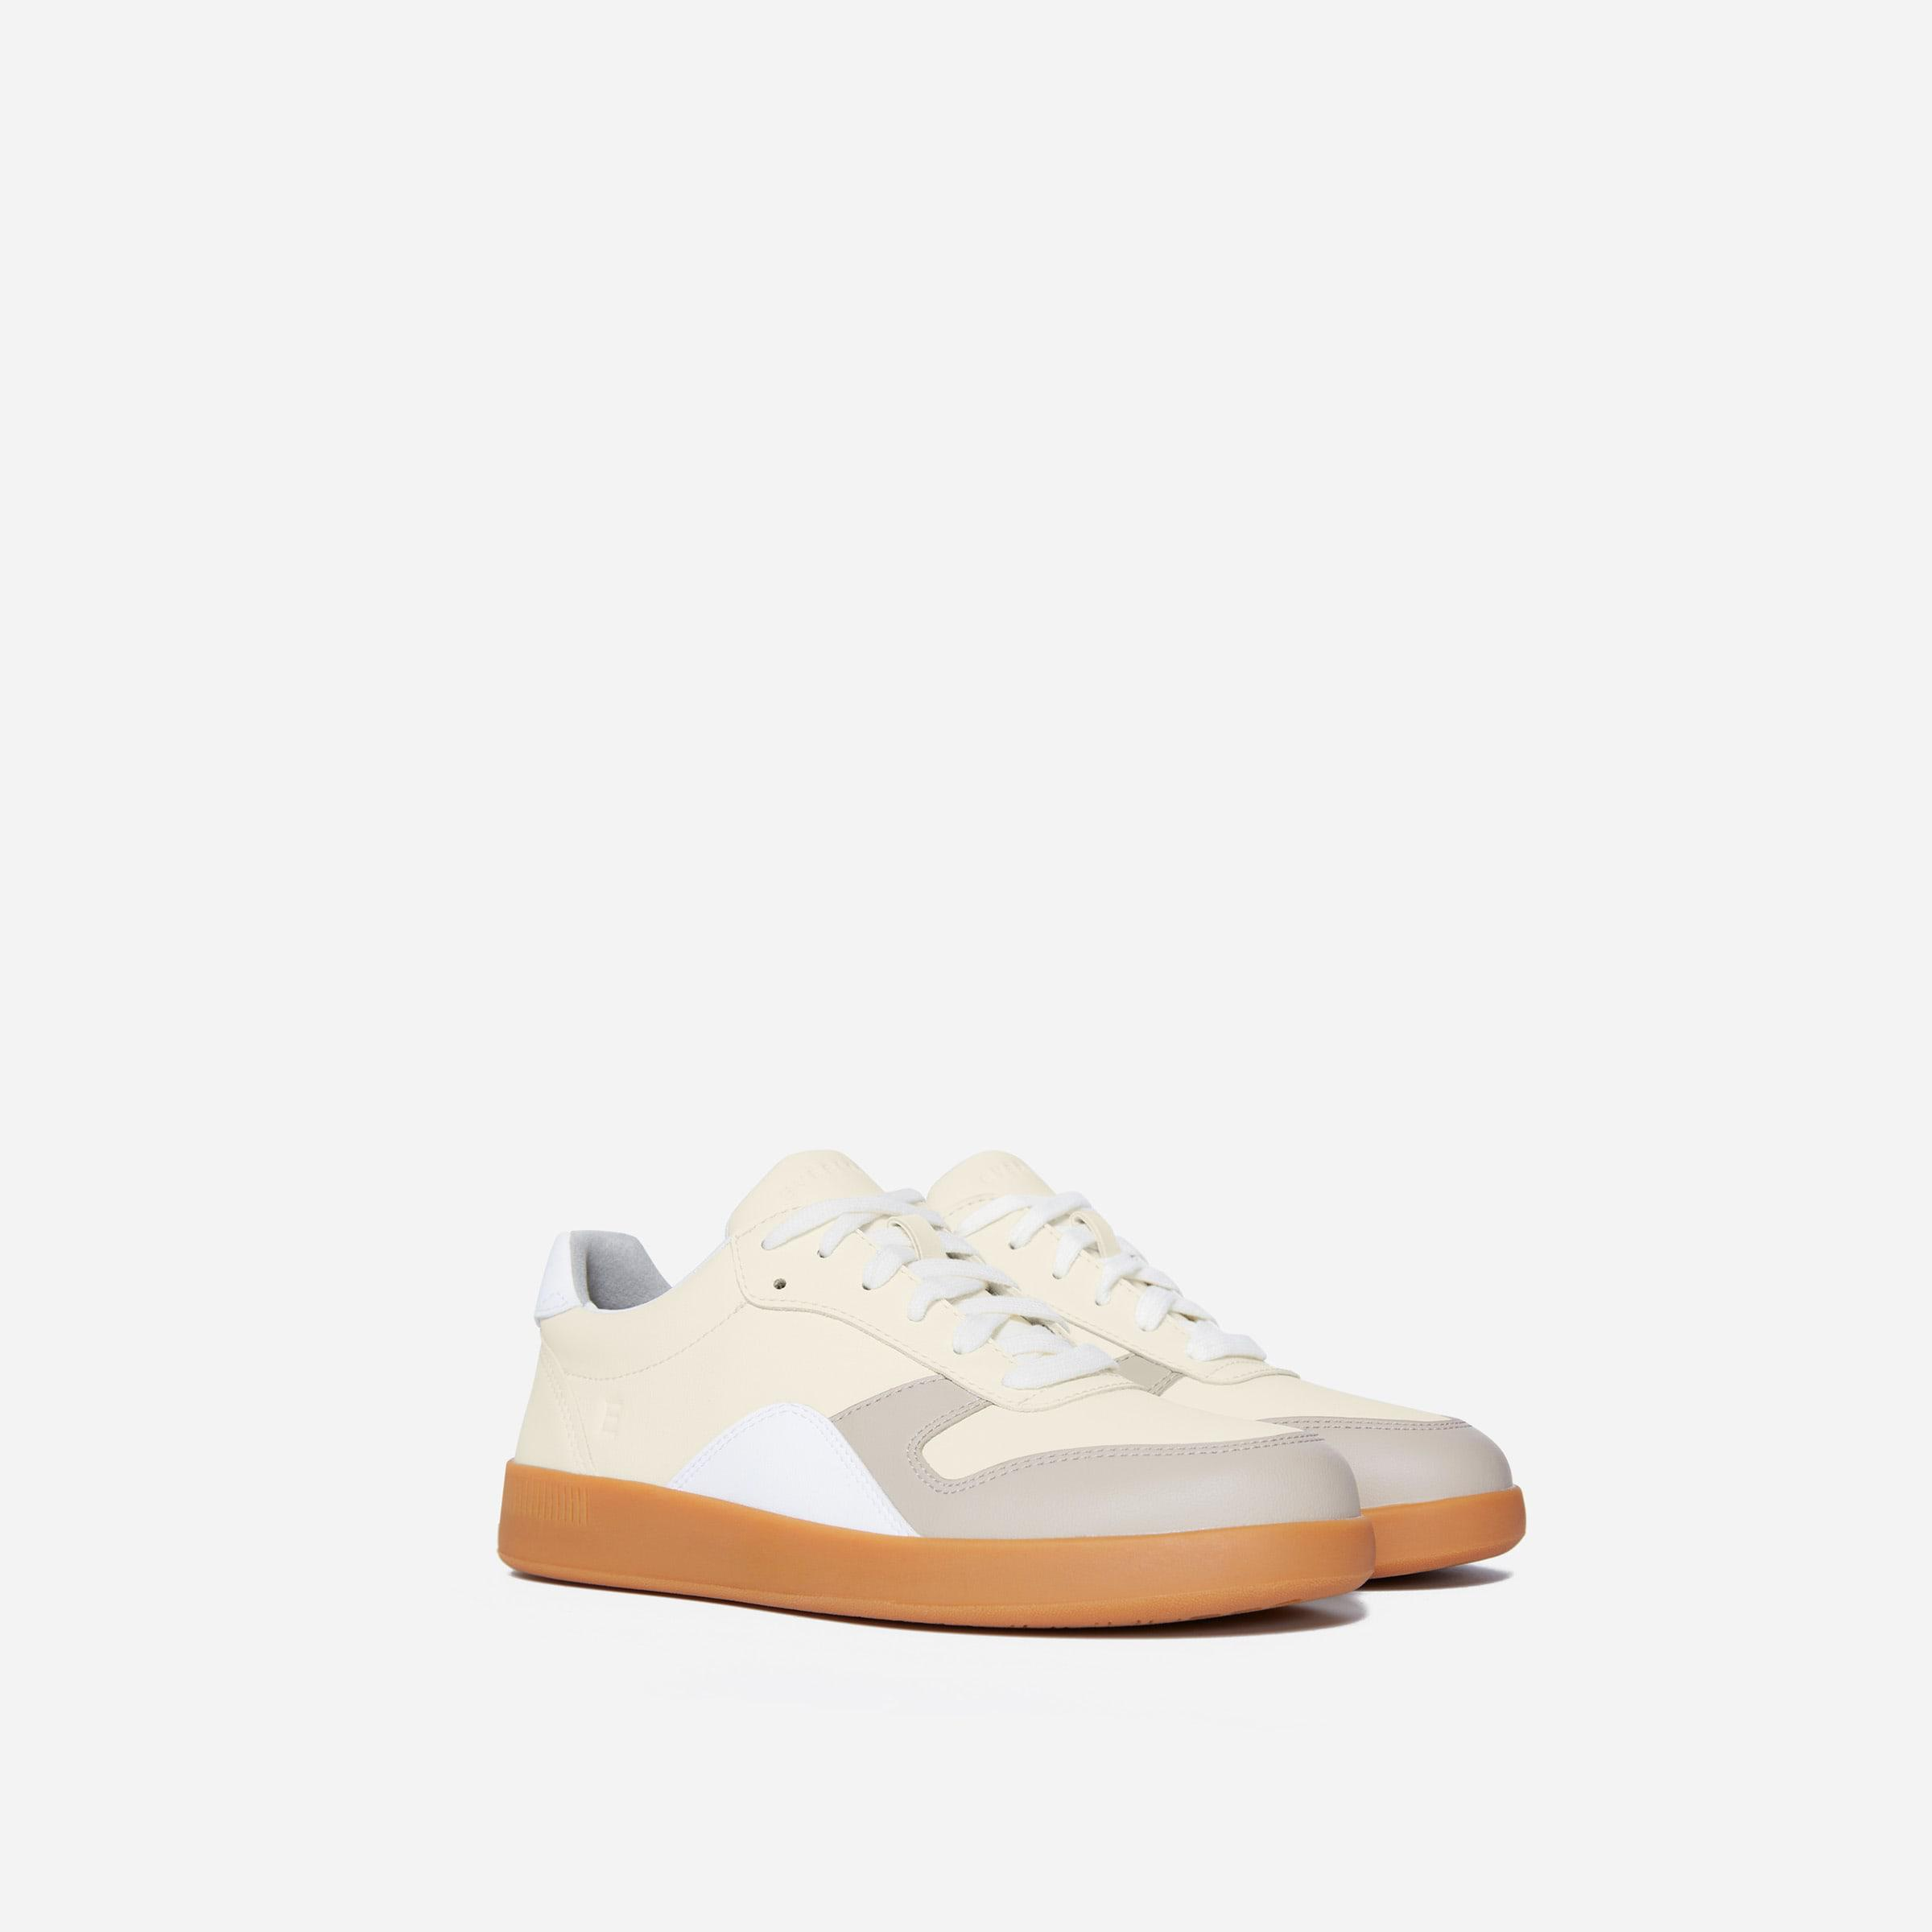 The ReLeather Court Sneaker